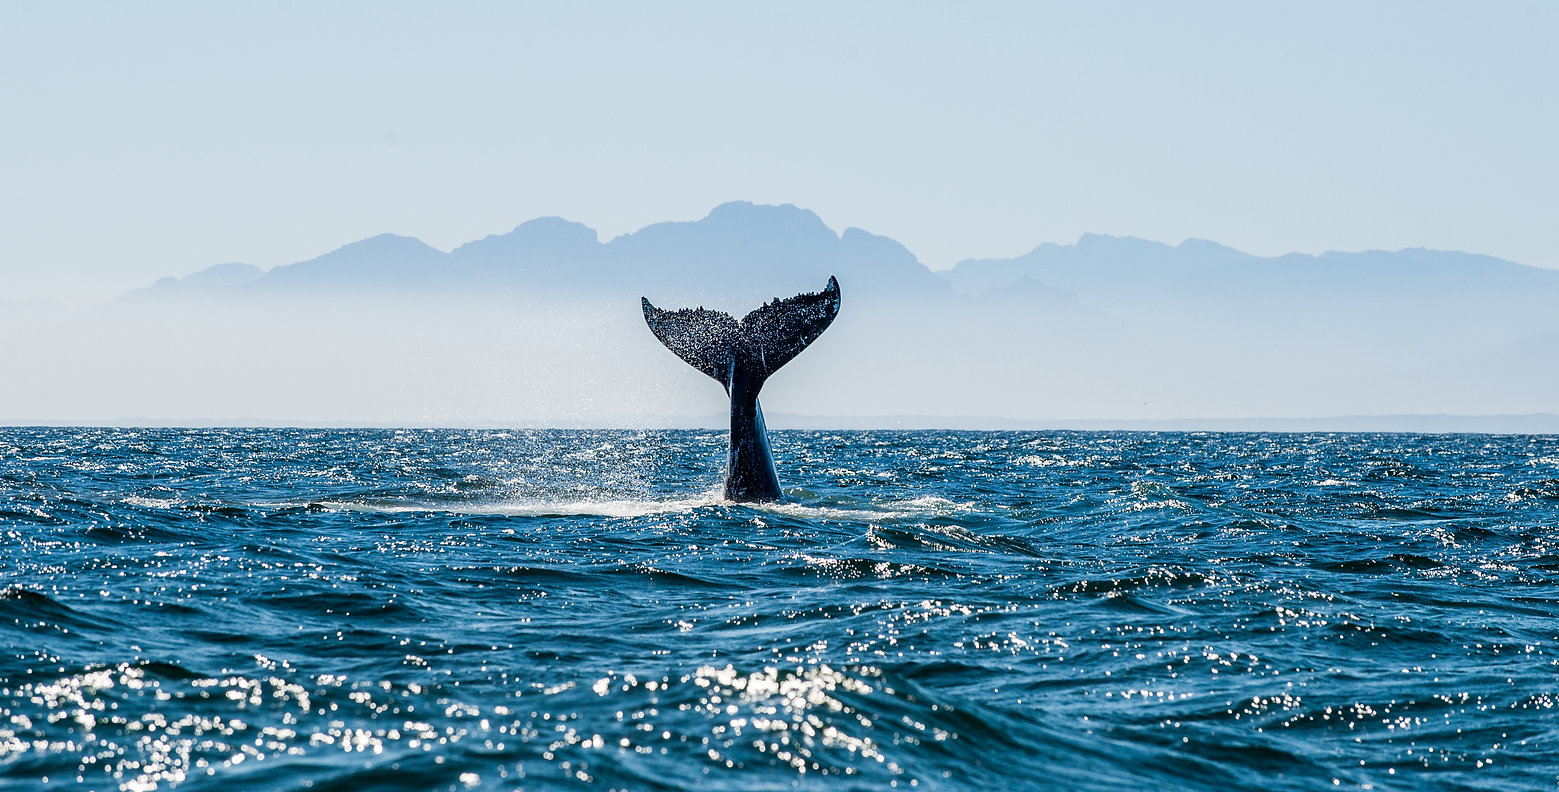 Seascape with Whale tail. The humpback w